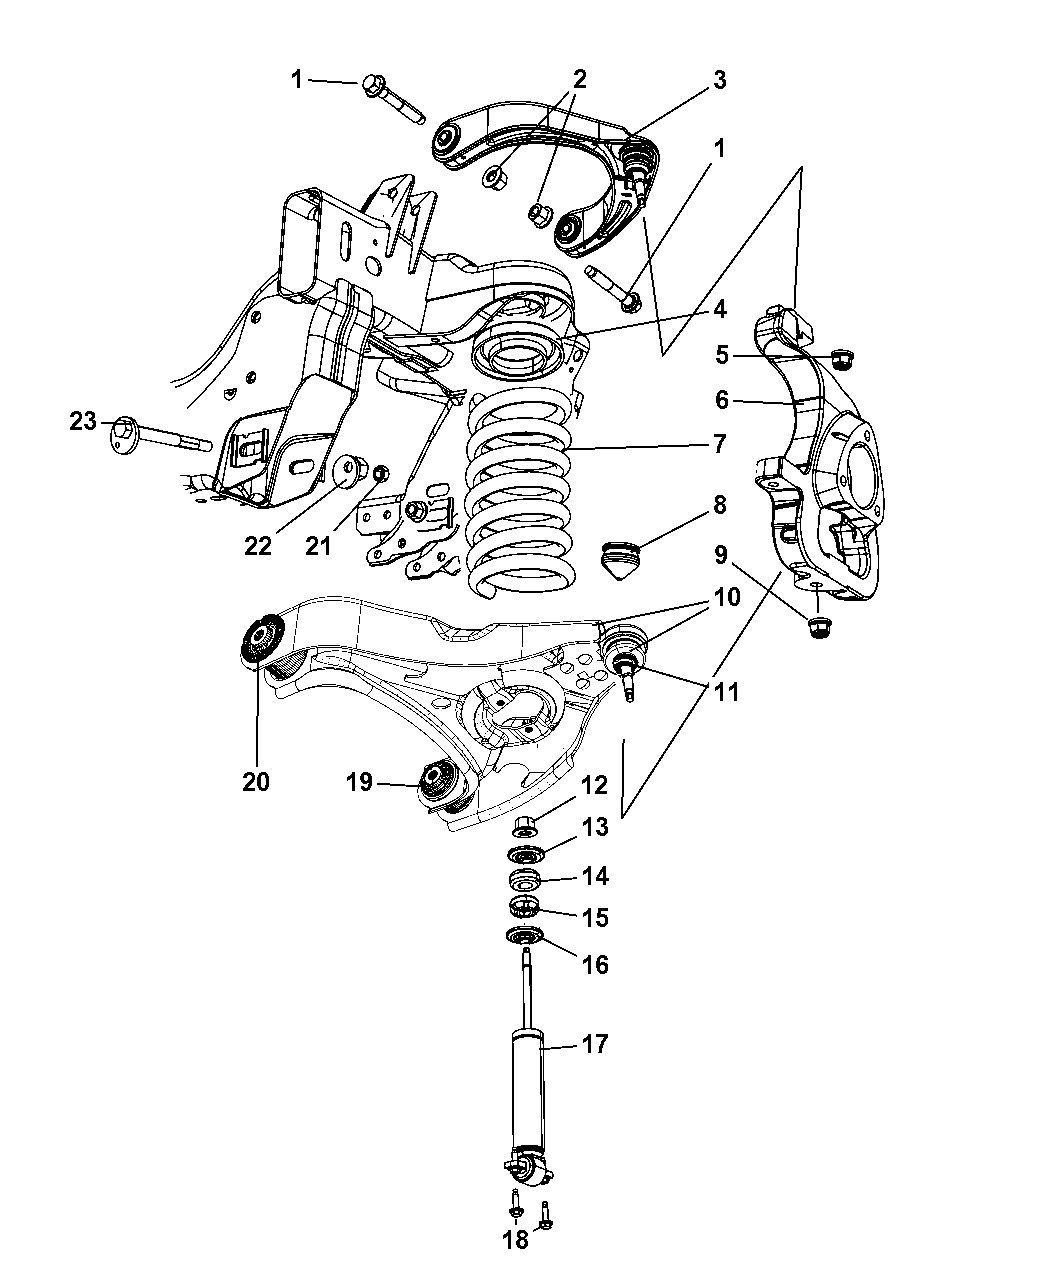 Dodge Ram 1500 Front End Parts Diagram